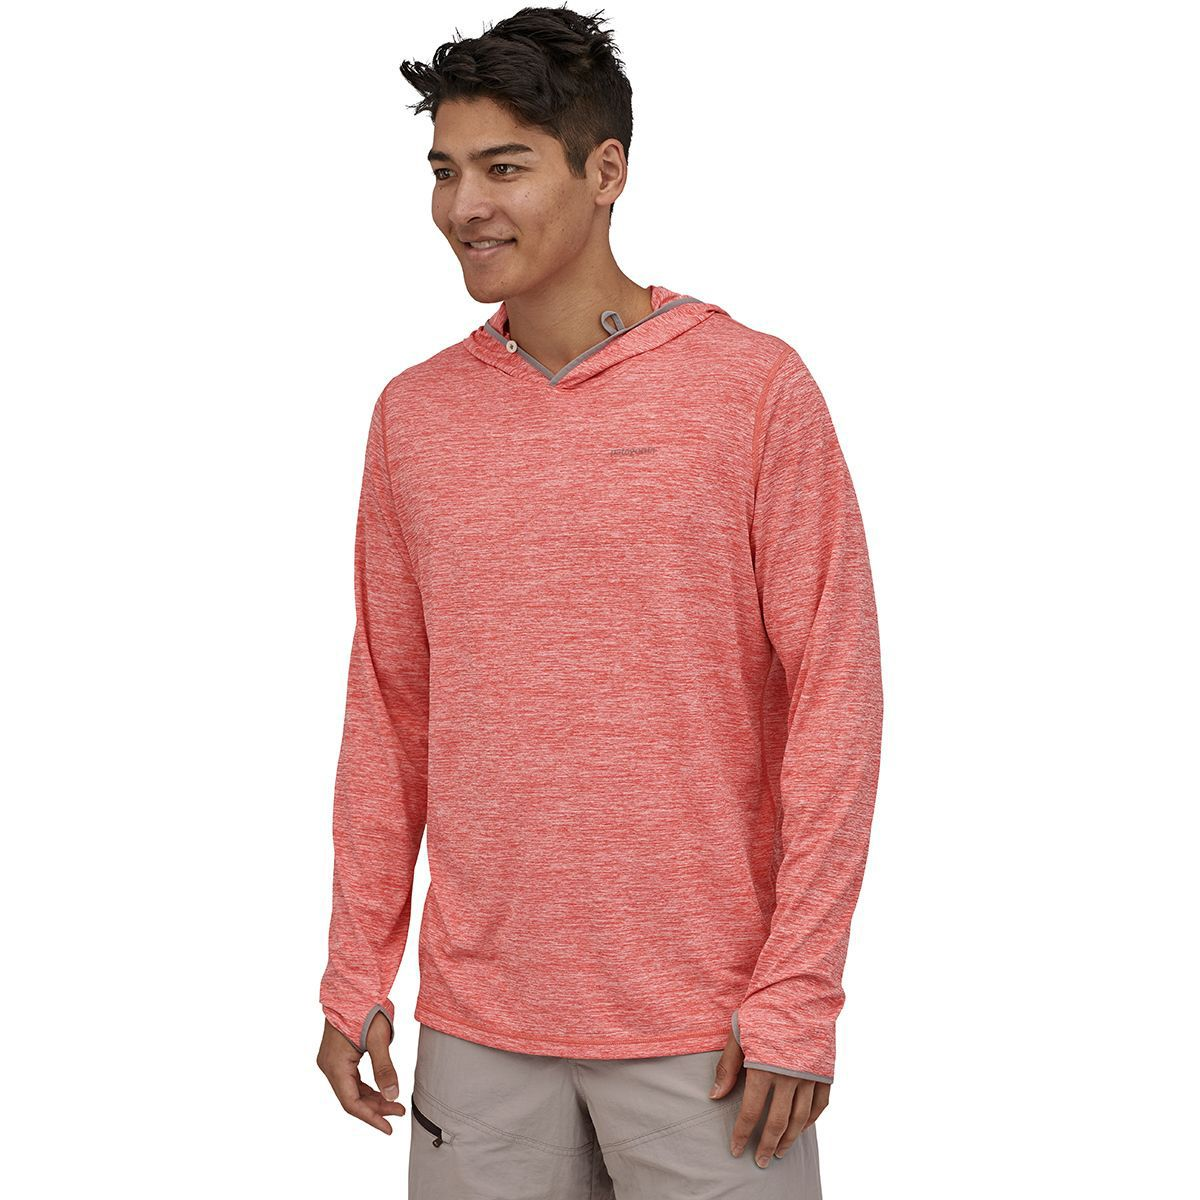 Long Sleeve Performance Tops